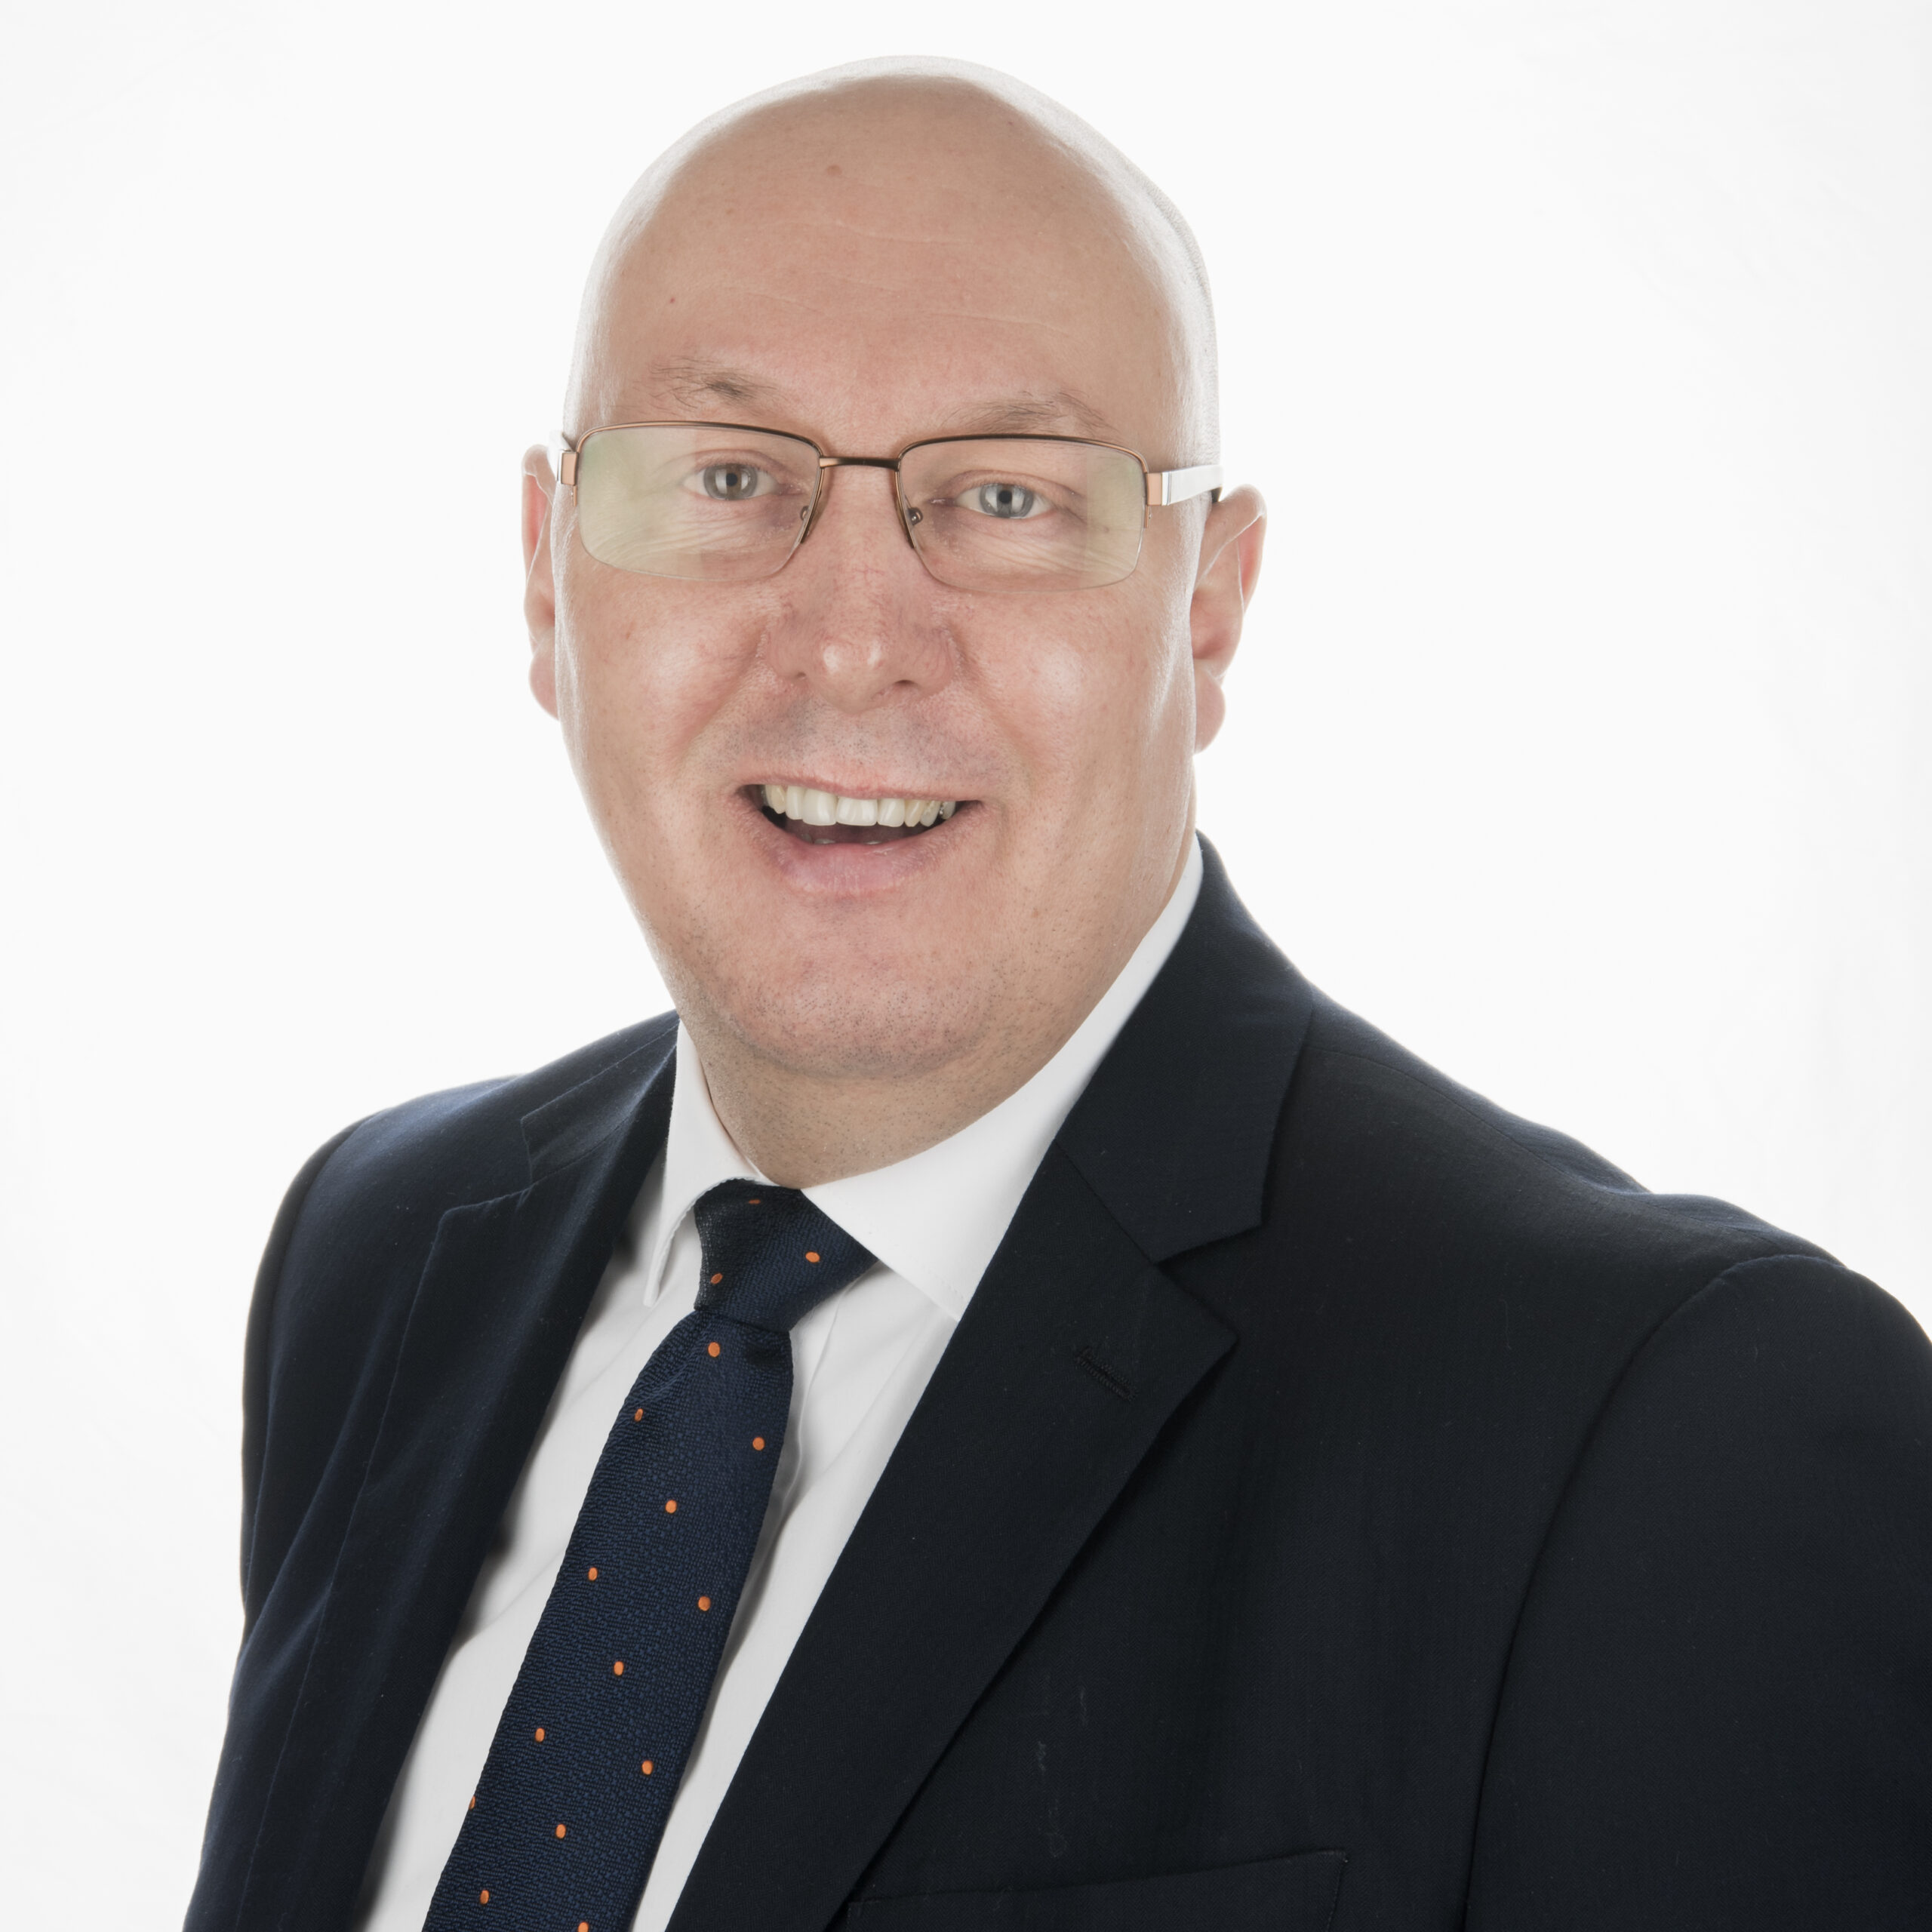 T<strong>om Fullerton, Regional Sales Manager – Scotland and Northern England at Dennis Eagle</strong><br>